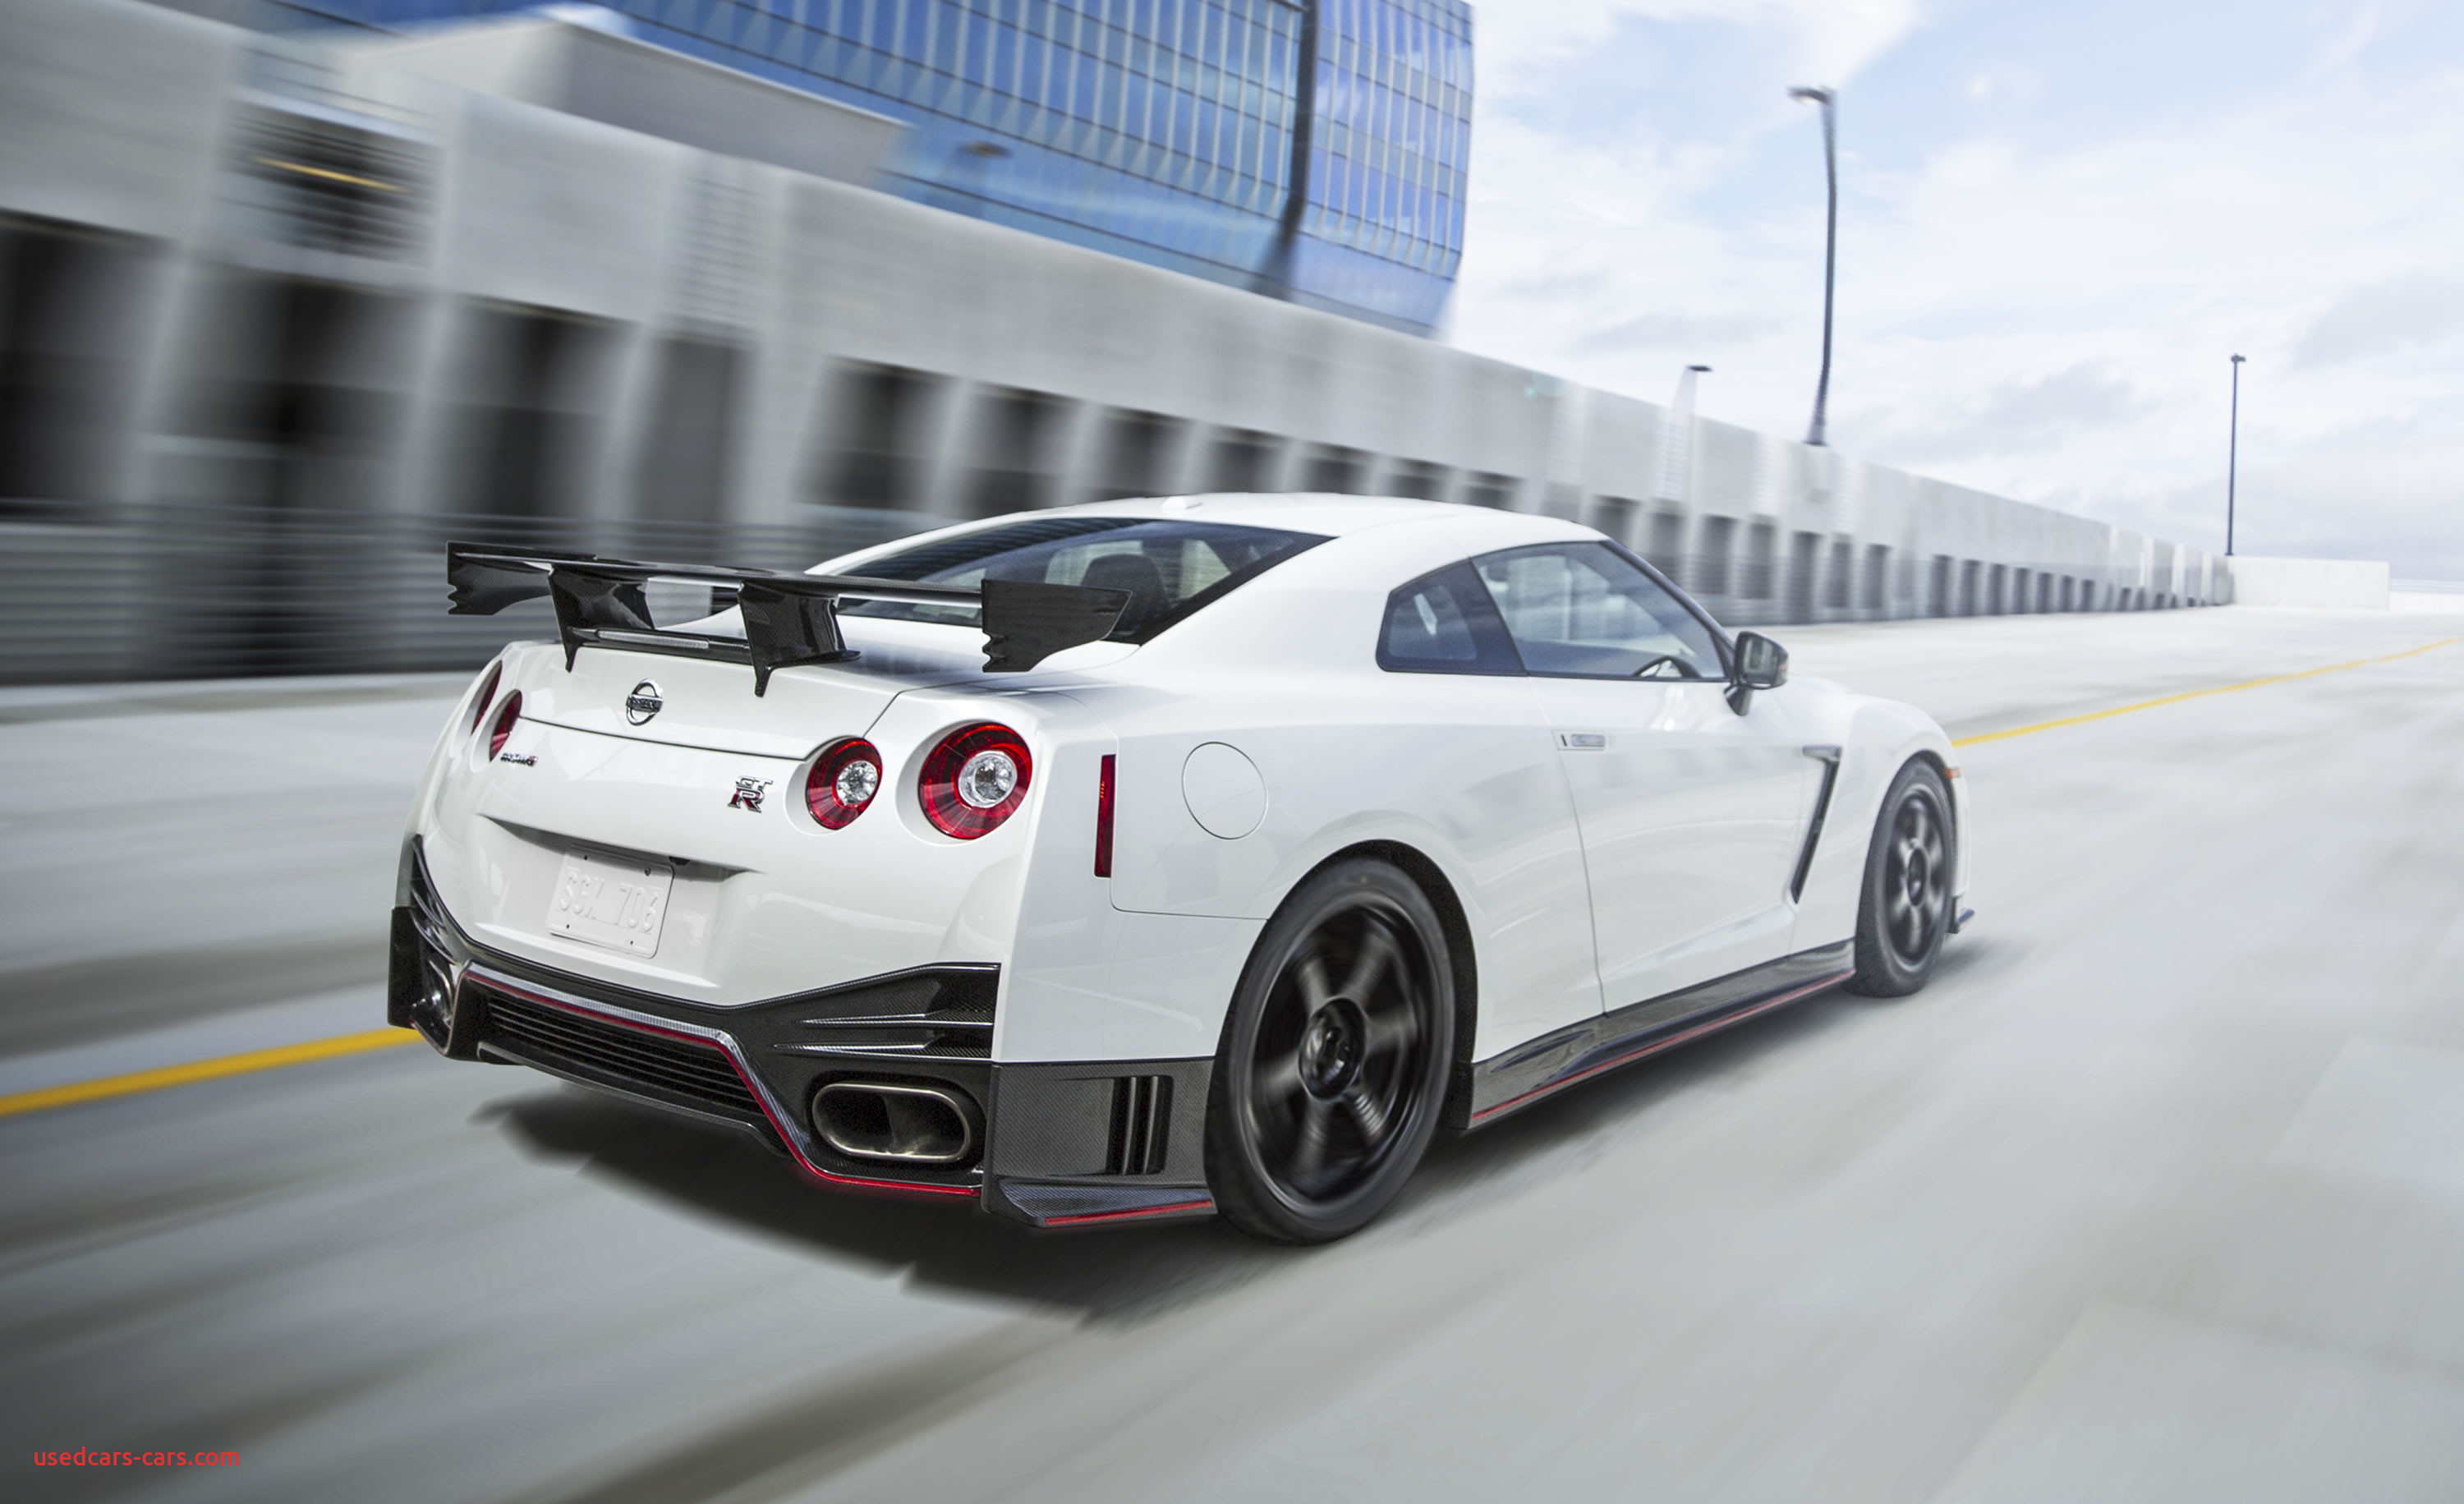 Gtr Nismo 2016 Fresh 2016 Nissan Gt R Nismo Photos Specs and Review Rs